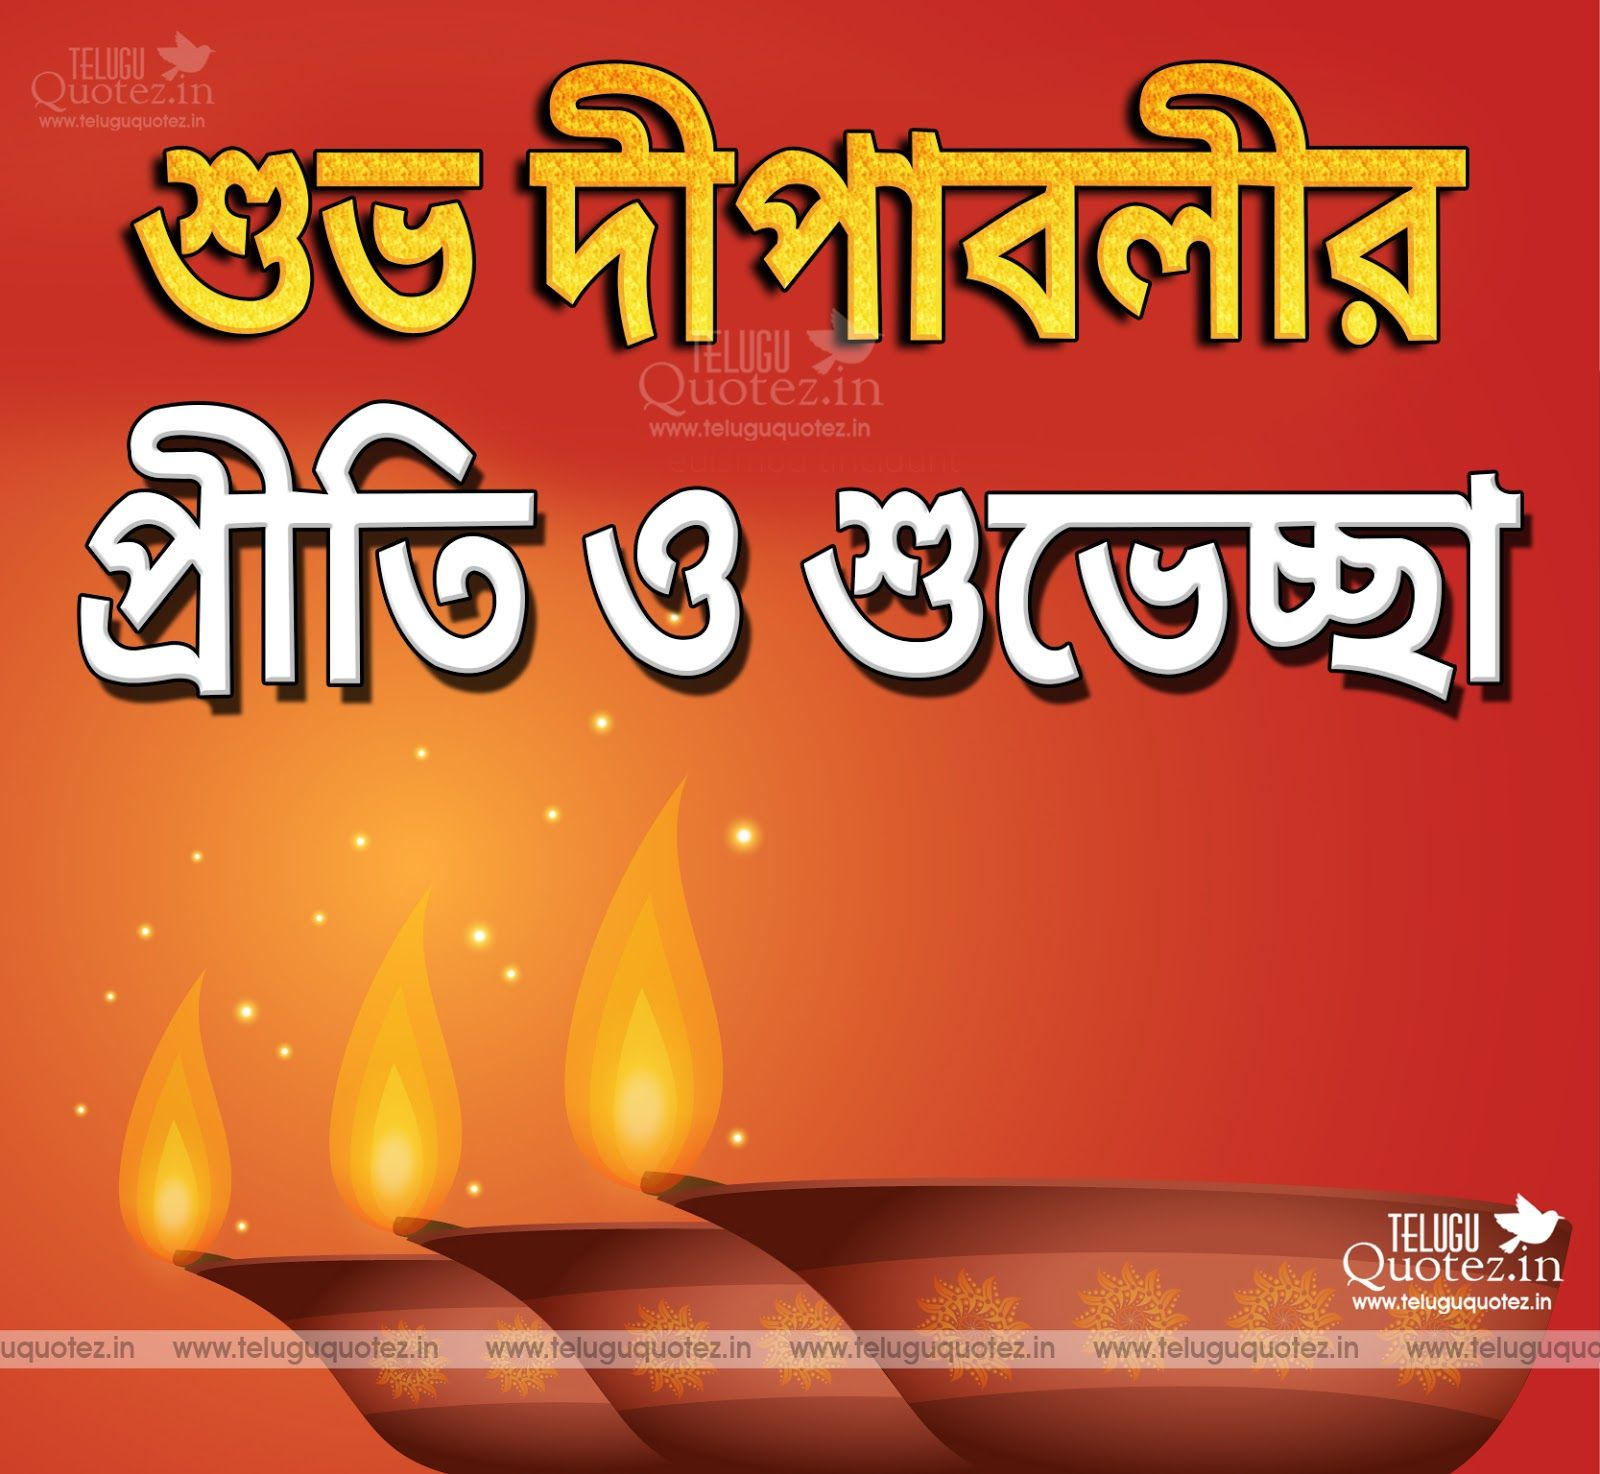 Here is a 2015 deepavali bengali language quotes and messages online here is a 2015 deepavali bengali language quotes and messages online top bangla diwali wishes and quotations onlinehappy diwali bengali quotes wisheswish kristyandbryce Gallery